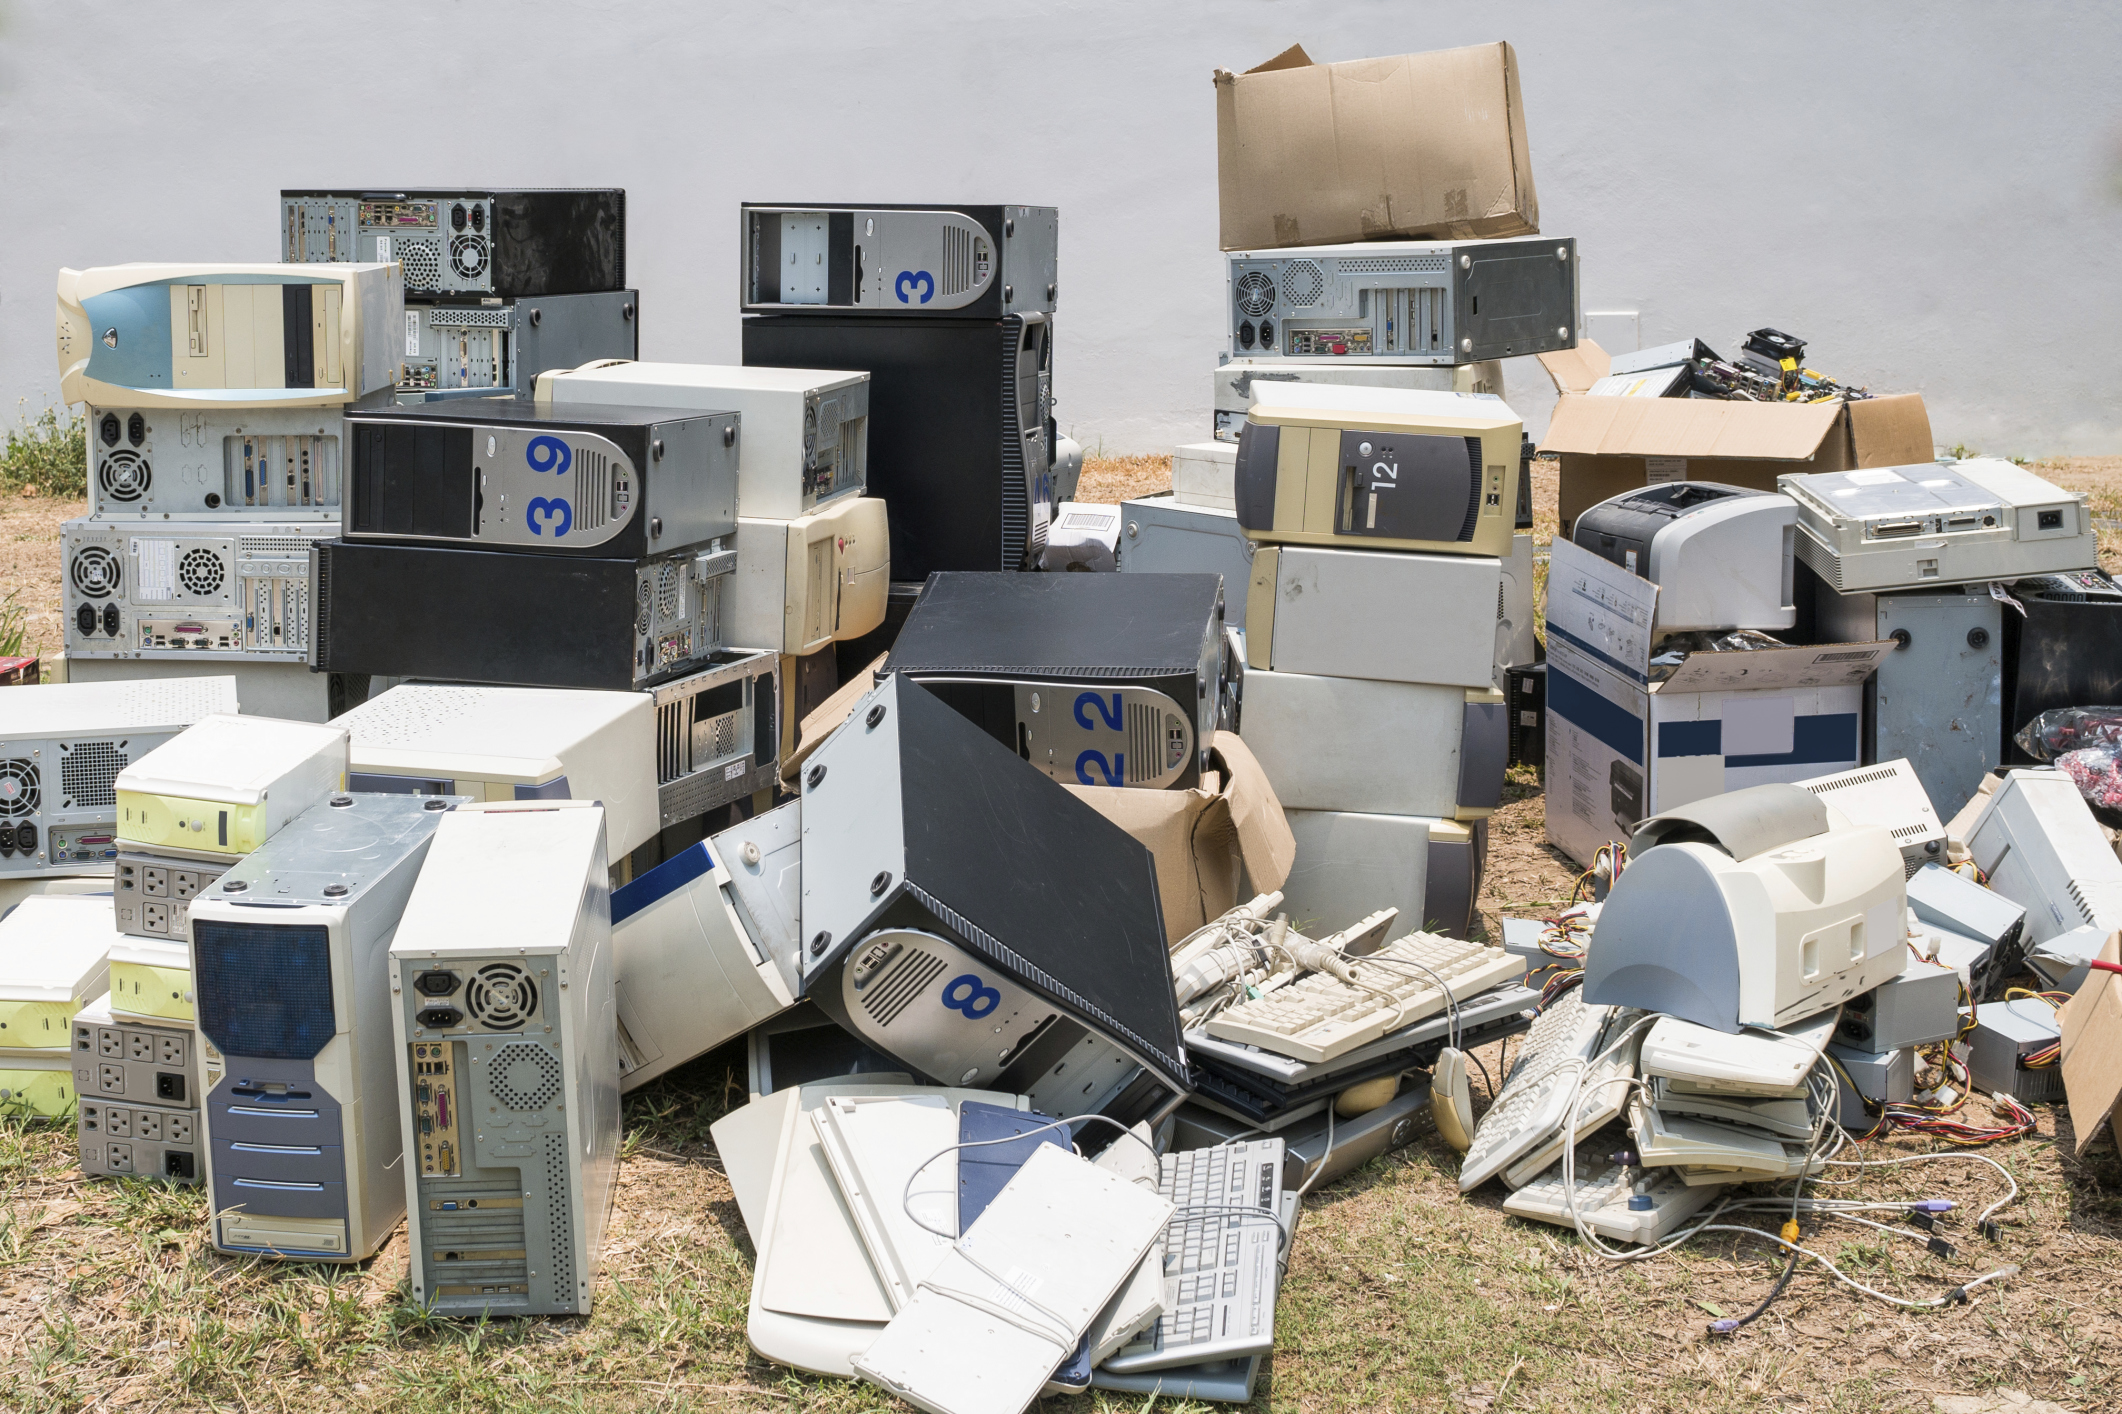 Discarding e-waste: Is your company security at risk?